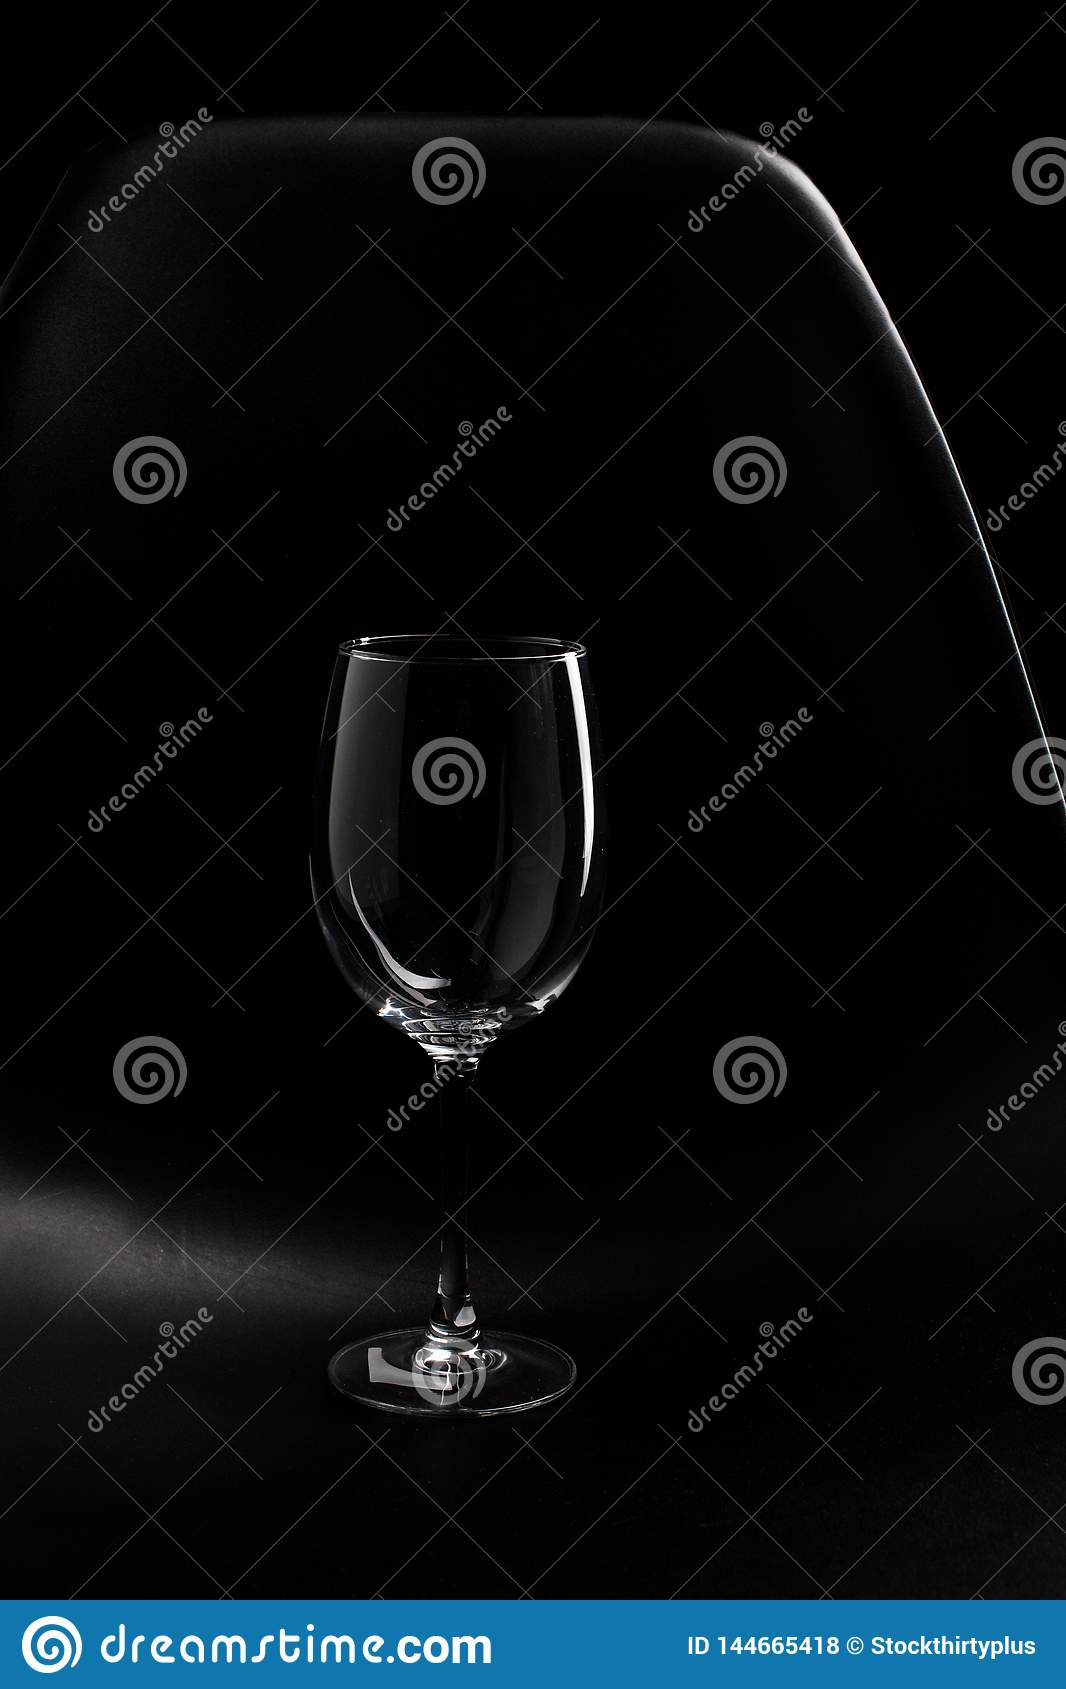 The Highlight of empty wine glass isolated